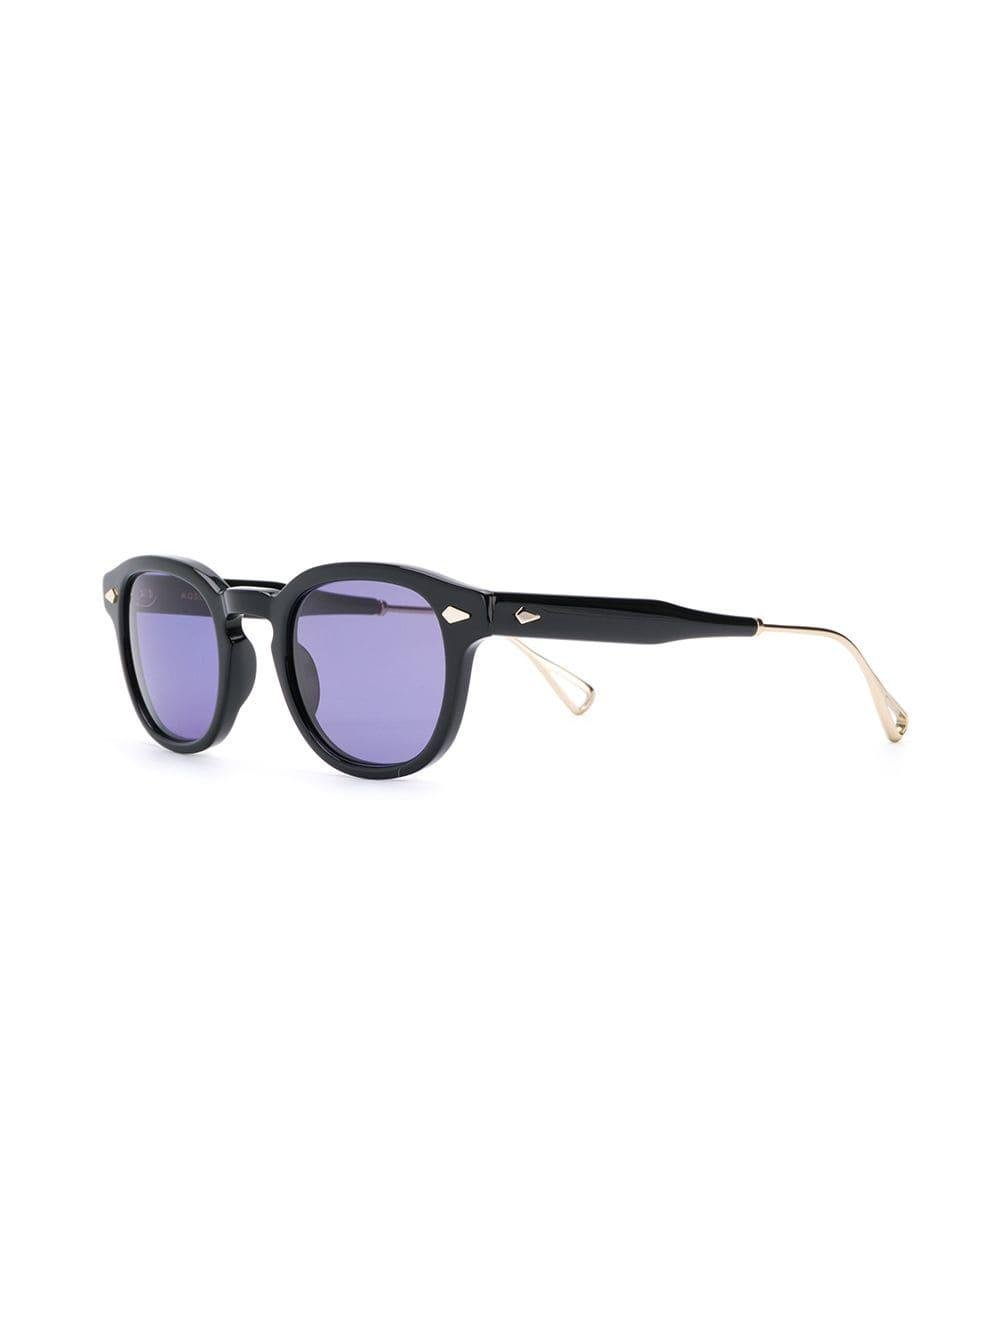 9cde2d0be9b Moscot Lemtosh Sunglasses in Black - Lyst